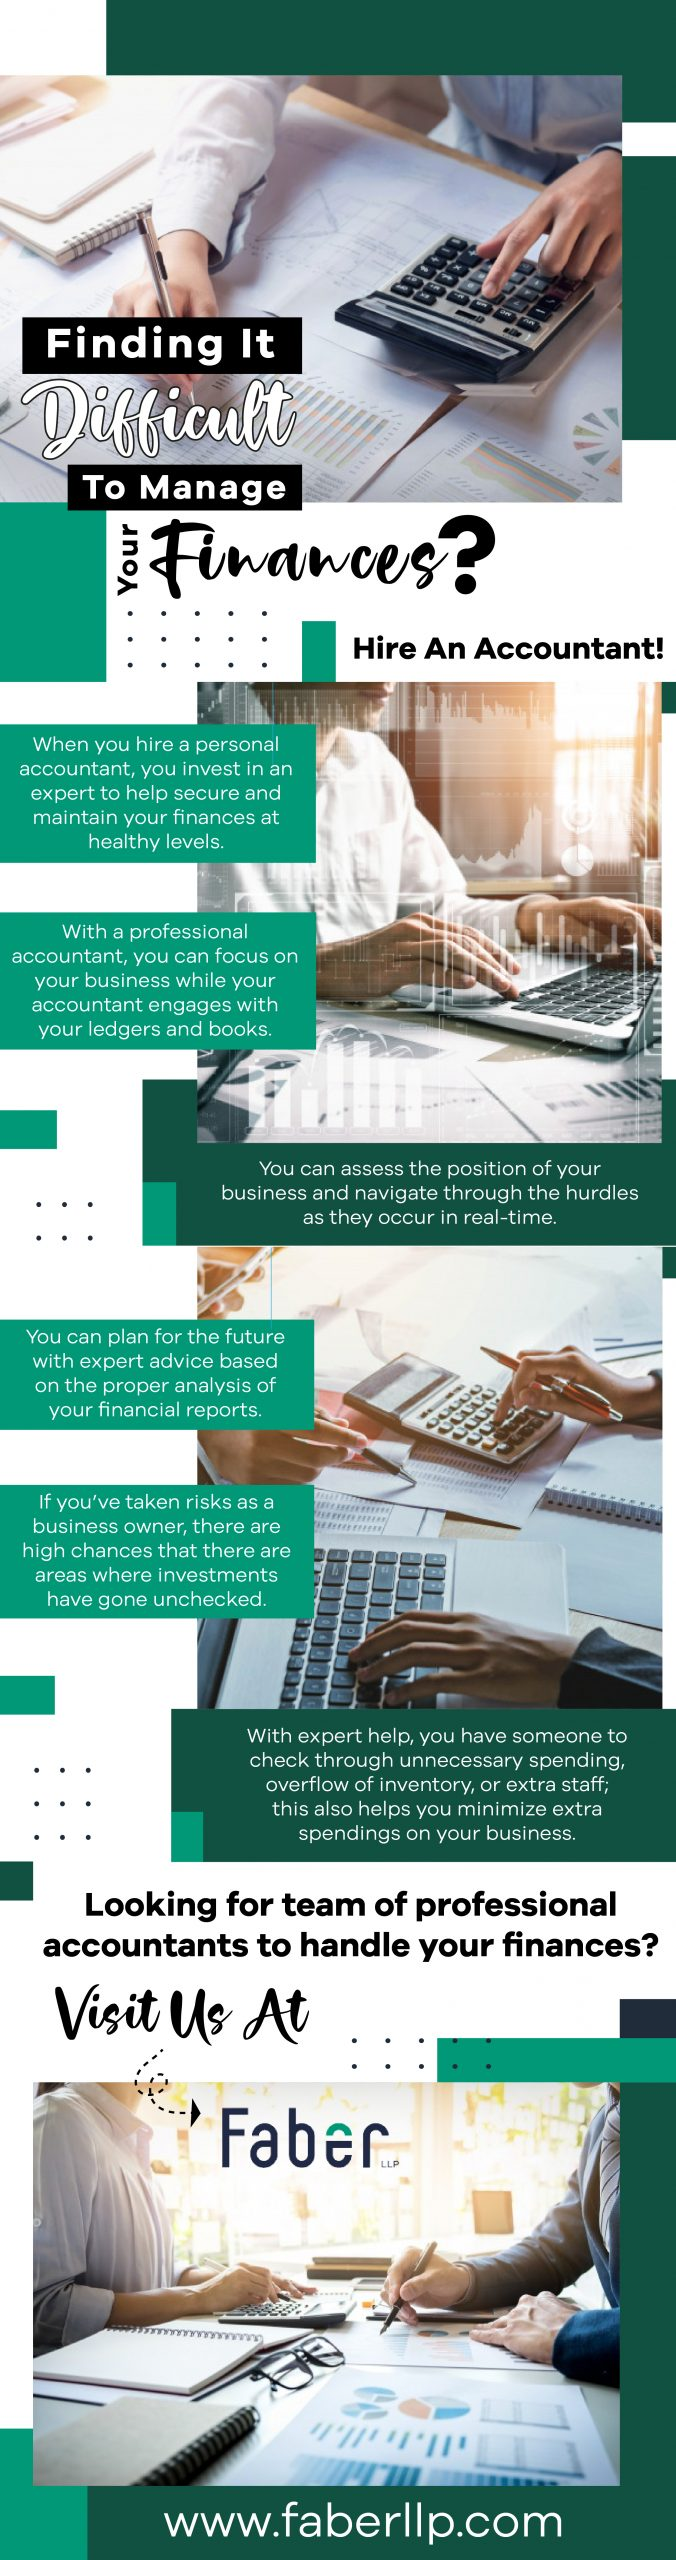 Finding it Difficult to Manage your Finances - Infographic